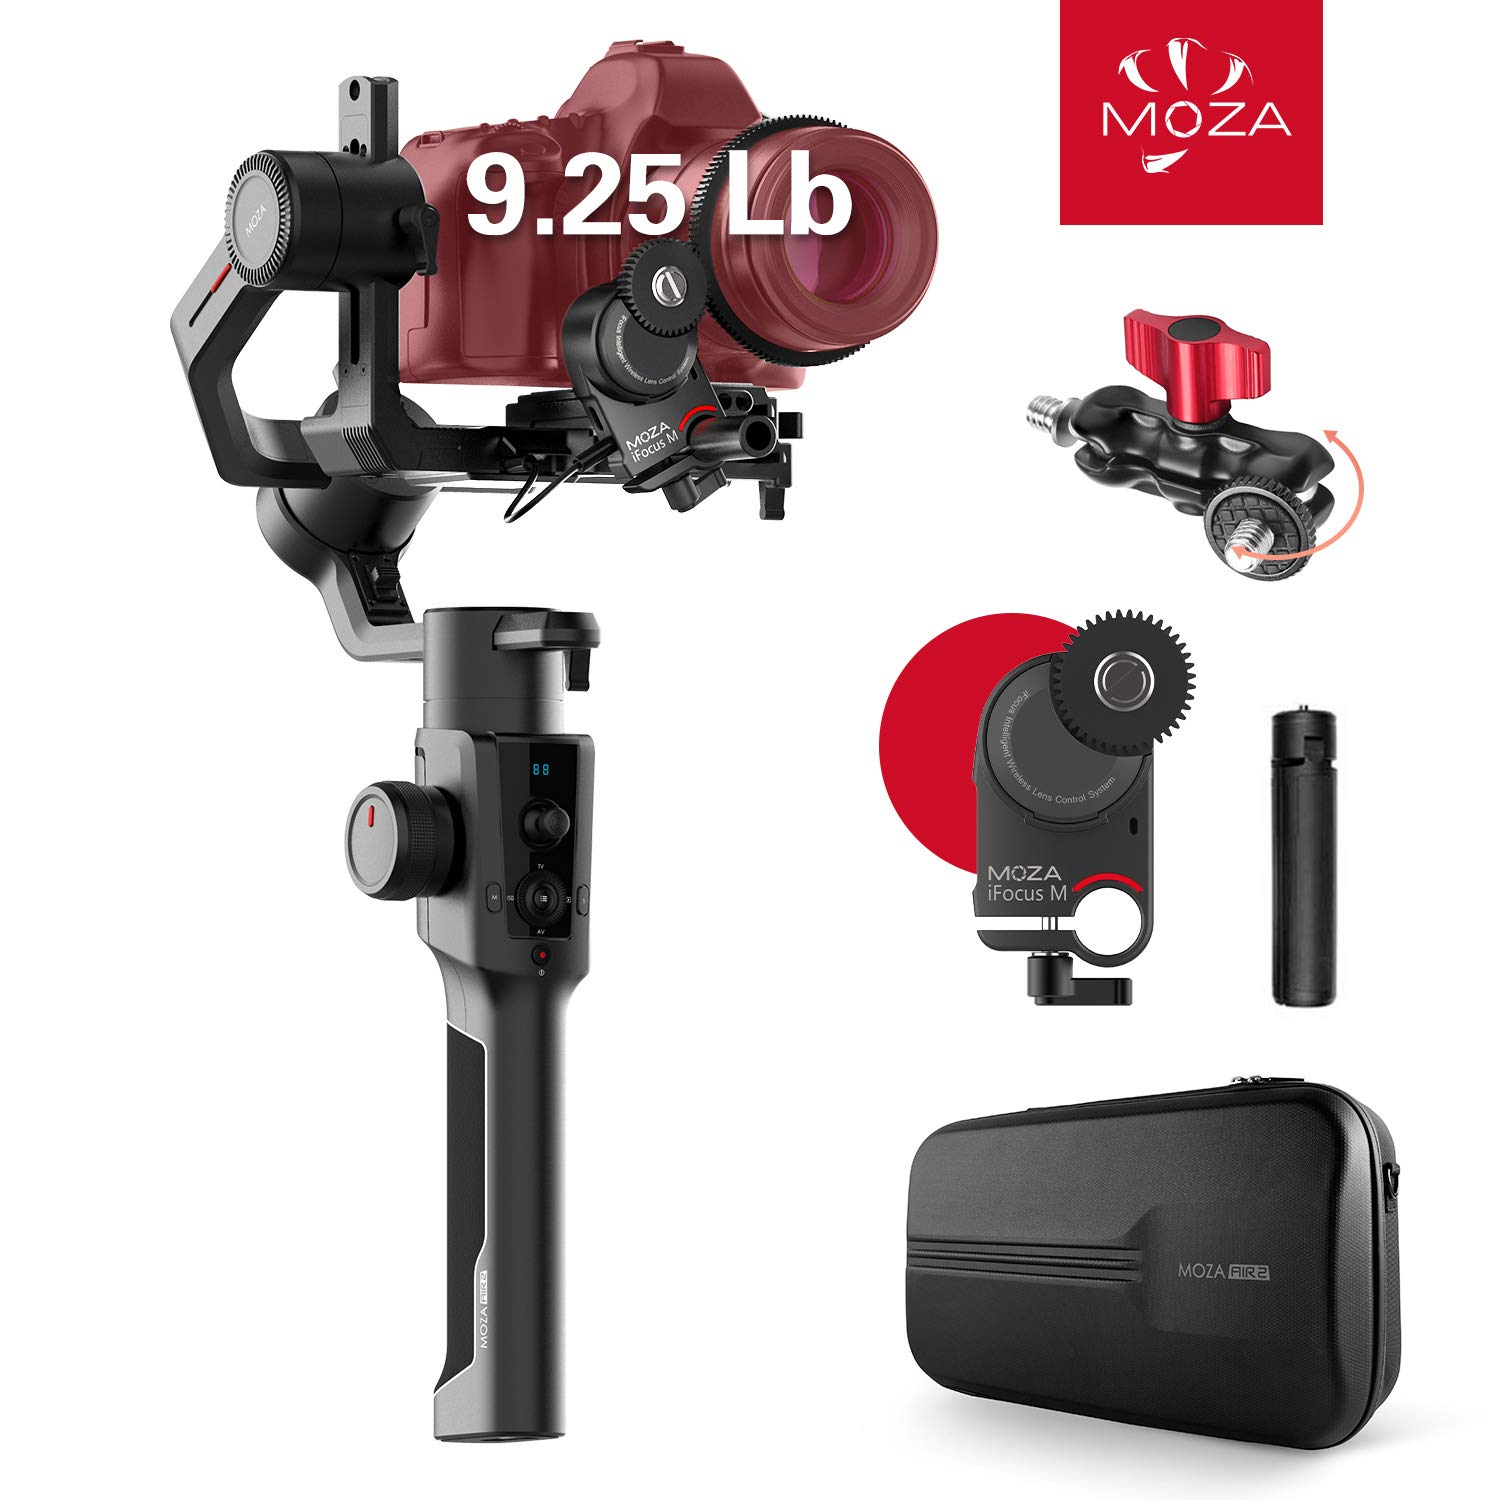 MOZA Air 2 with iFocus-M Wireless Motor, 3-axis Gimbal Stabilizer, 9Lb Payload 8 Follow Modes 16h Run-time for DSLR Mirrorless Pocket Cinema Cameras, Multi-Function Ballhead Mount & Hard Case Included by MOZA